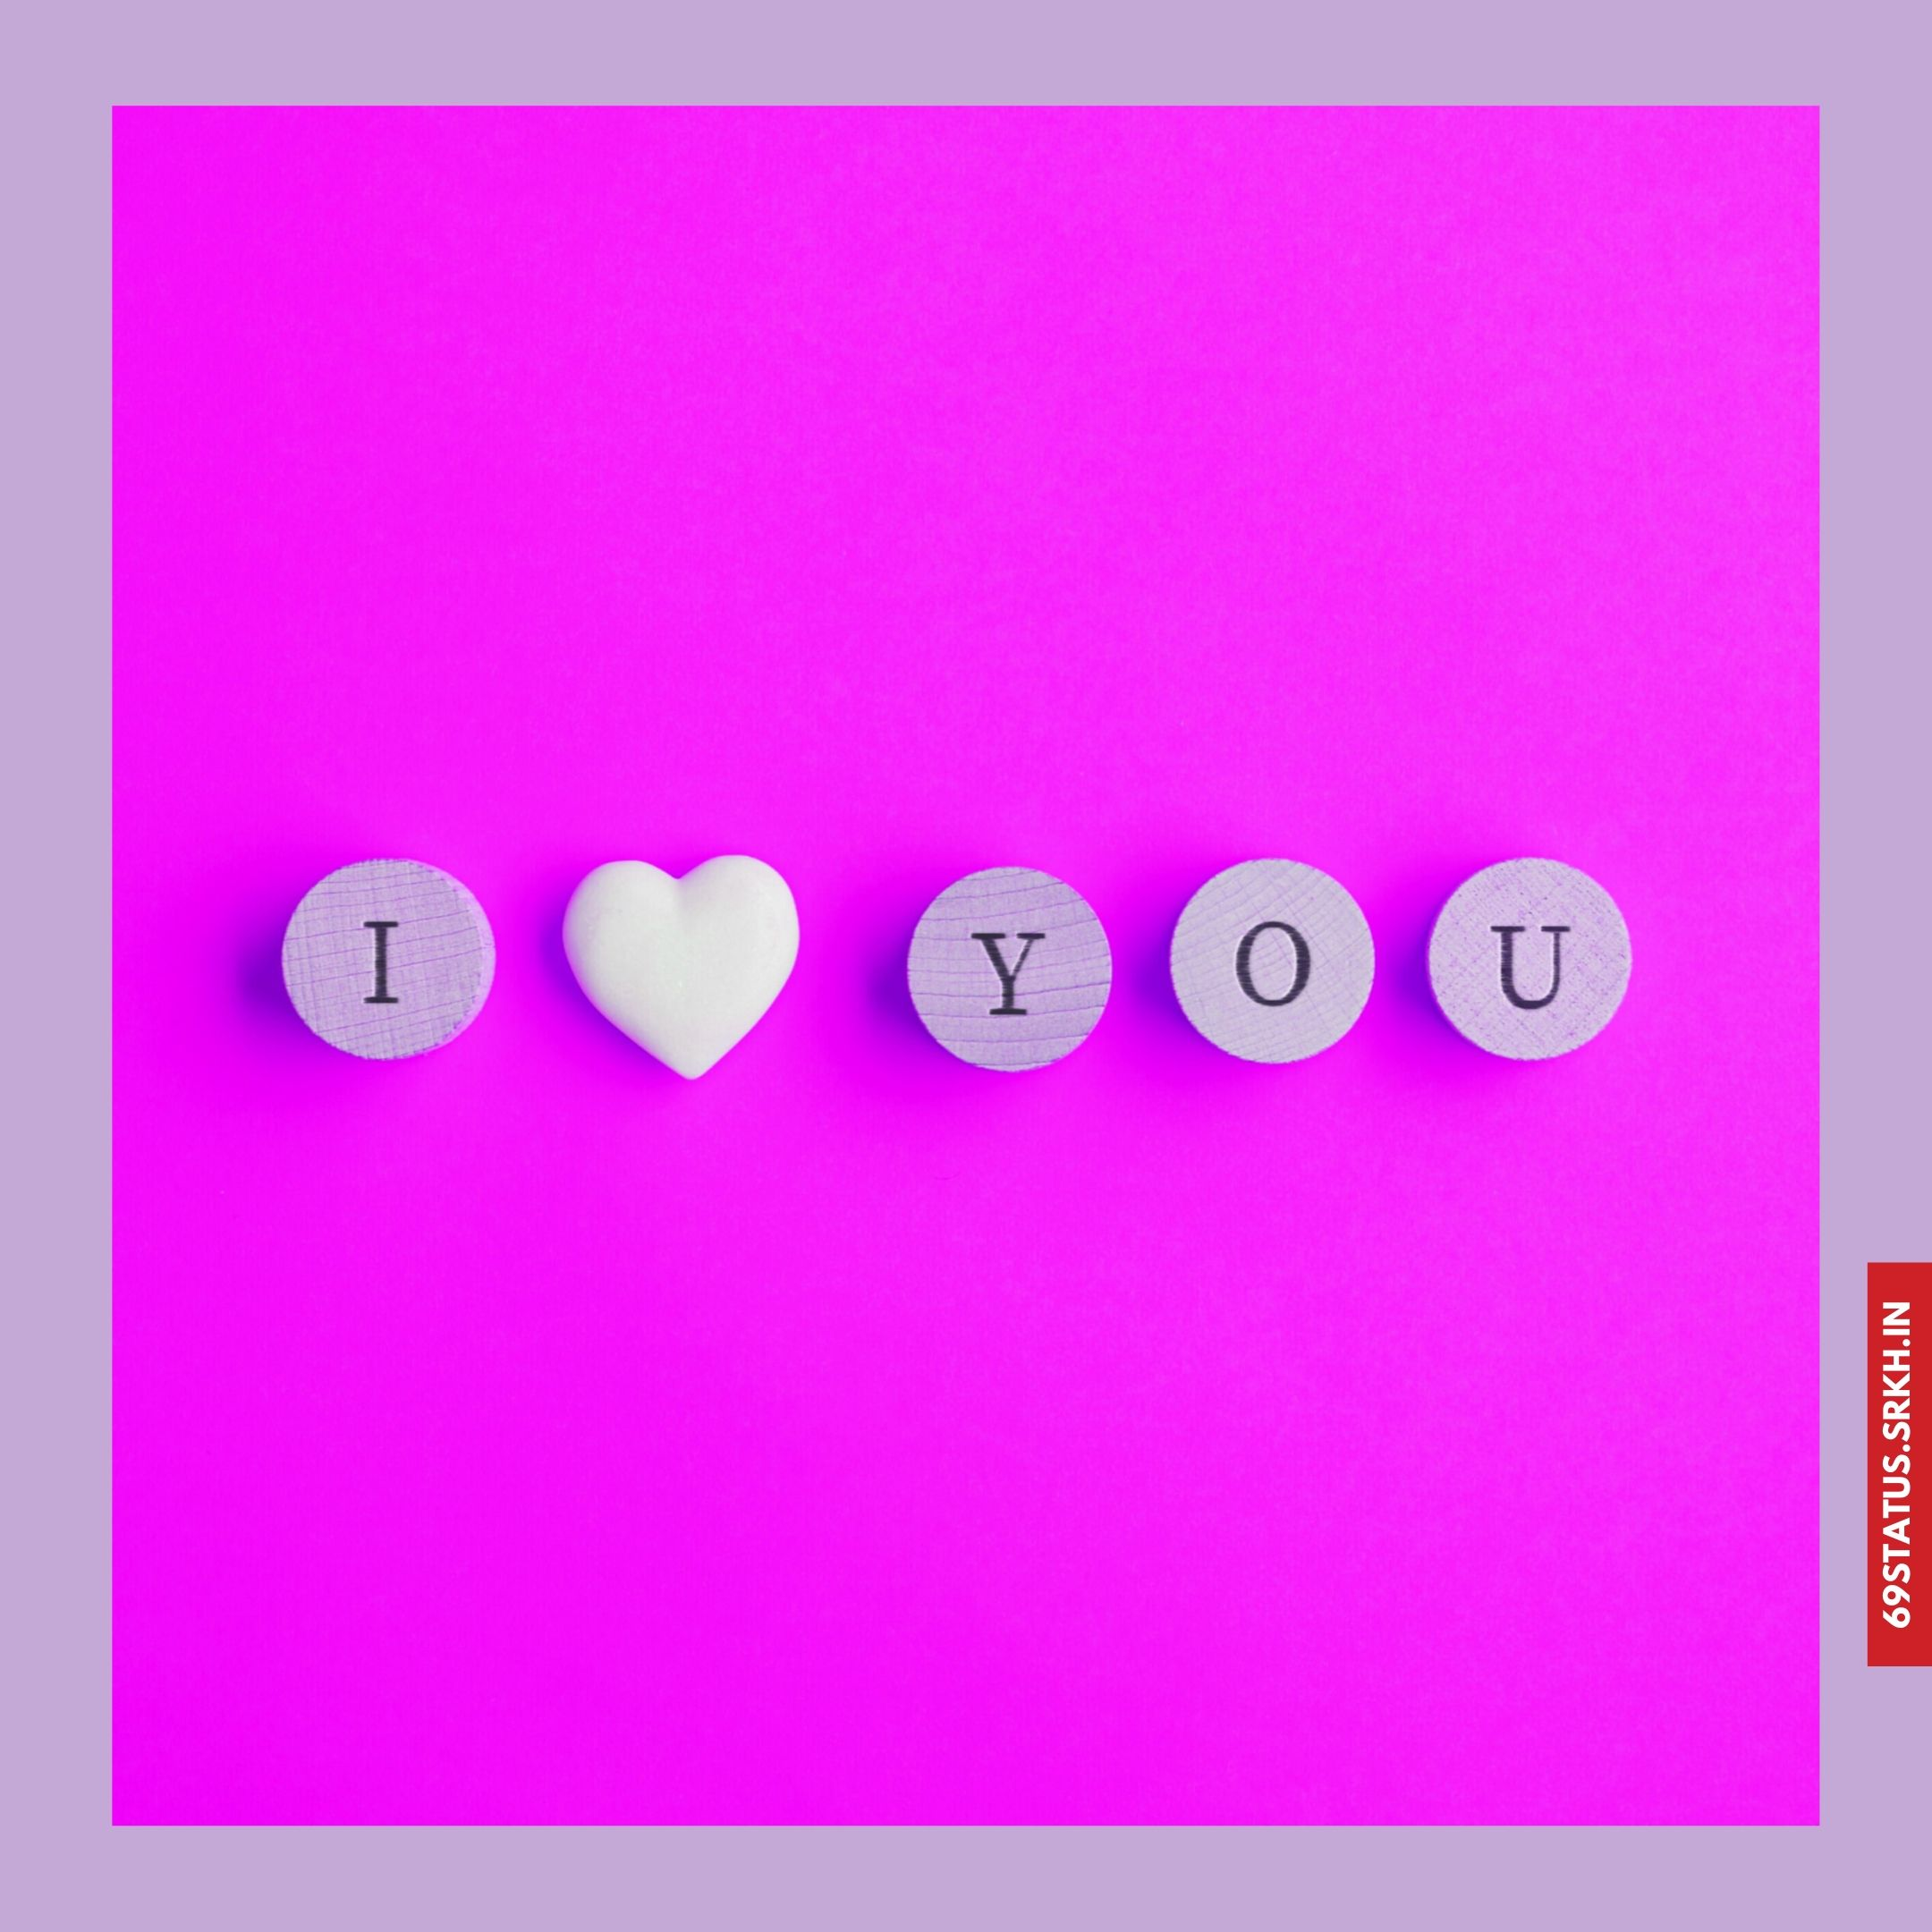 New I Love You images full HD free download.